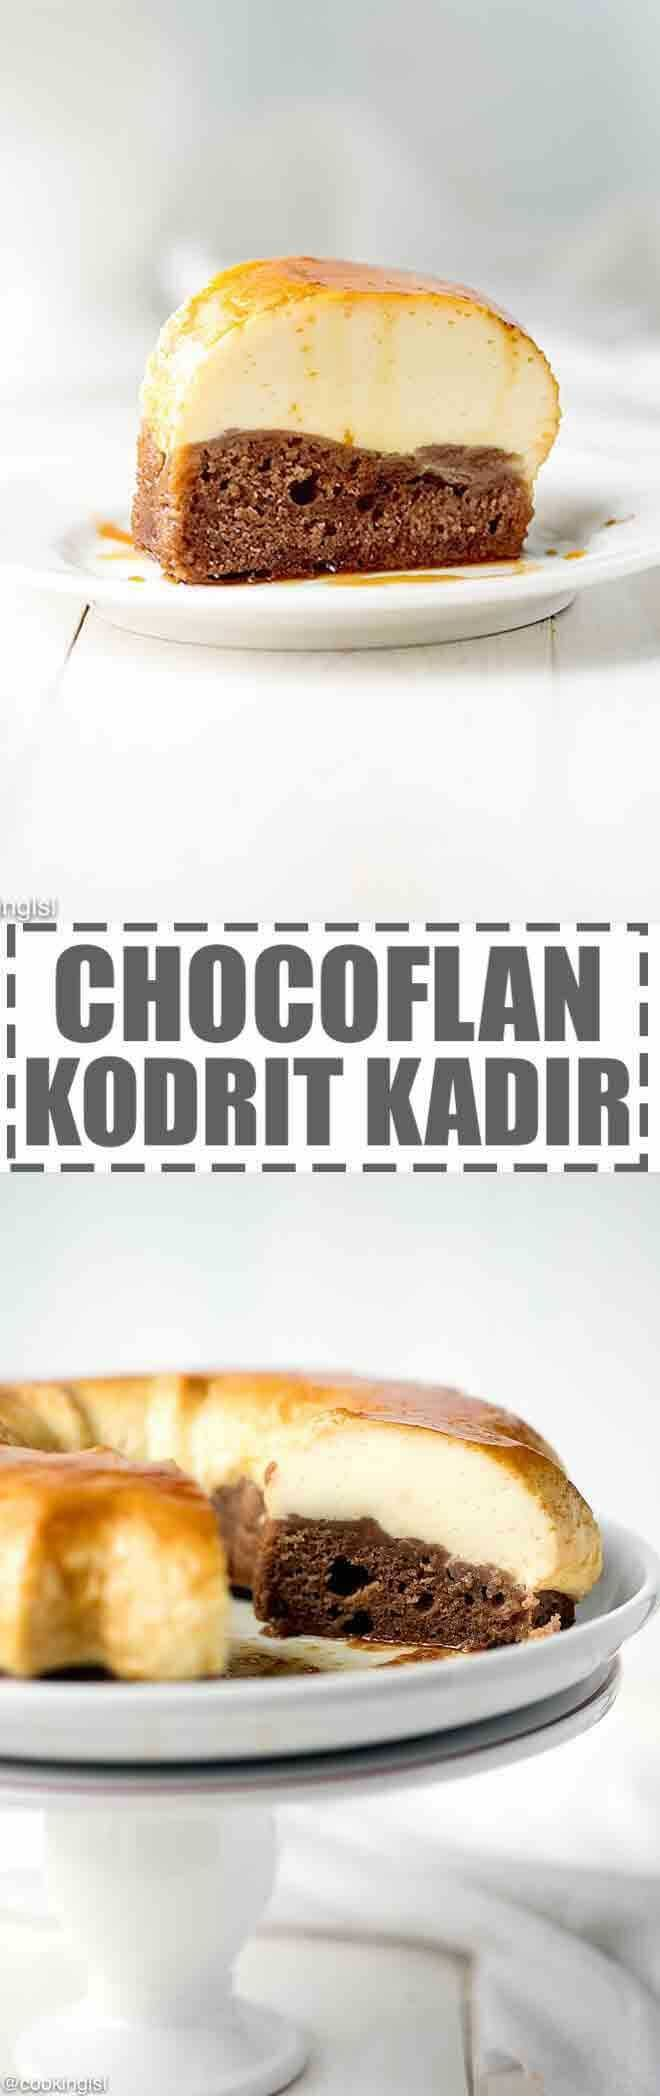 Easy Chocoflan Recipe - Kodrit Kadir -a simple and impressive dessert, that features a layer of chocolate cake on the bottom and smooth and creamy flan layer on top. The chocolate layer soaks up the caramel from the plan, which makes this Chocoflan (Kodrit Kadir) extra moist. via @cookinglsl